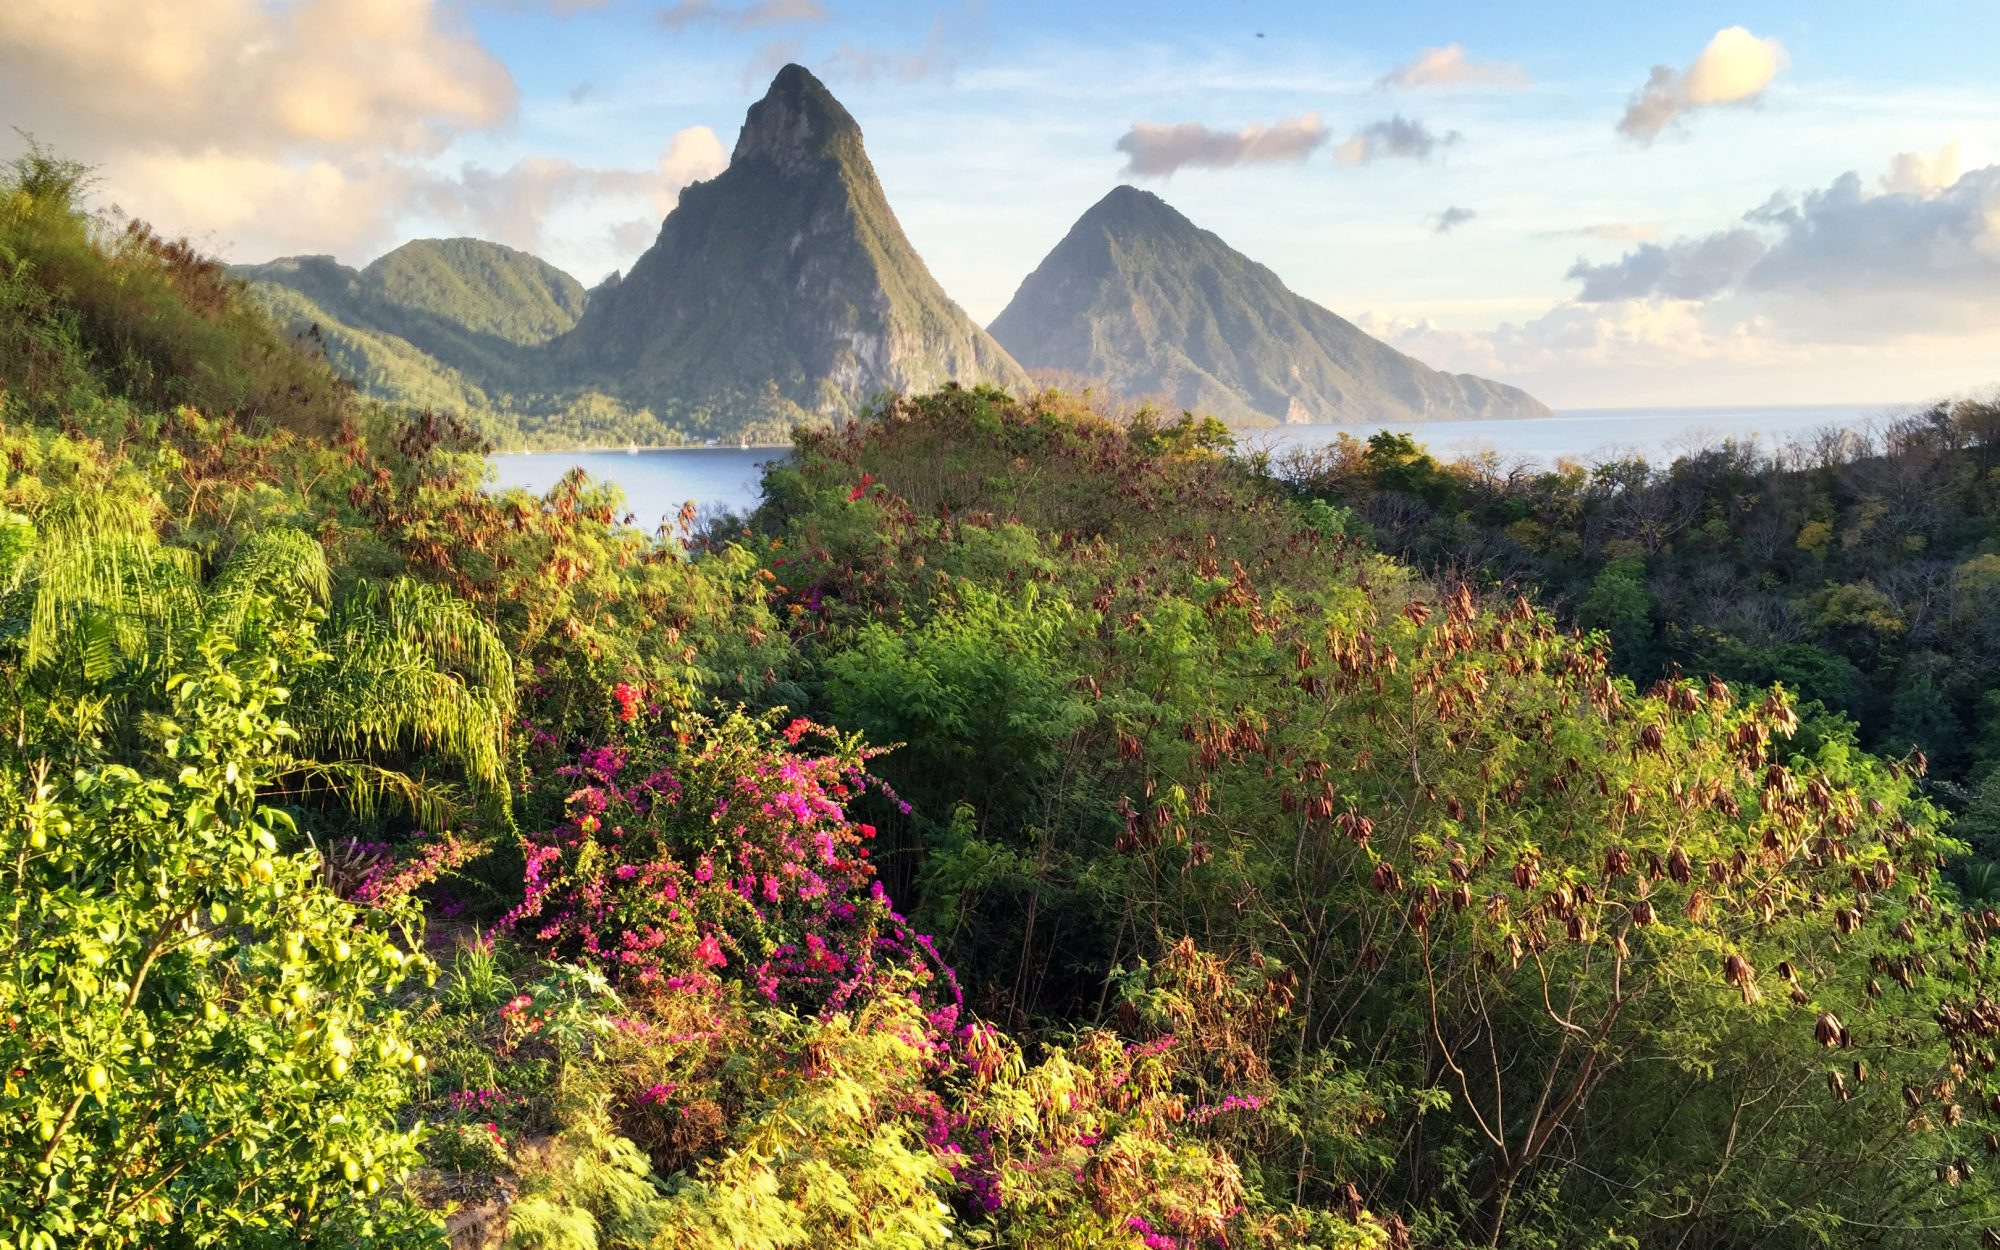 On St. Lucia, Chocolate and Hospitality Go on Honeymoon